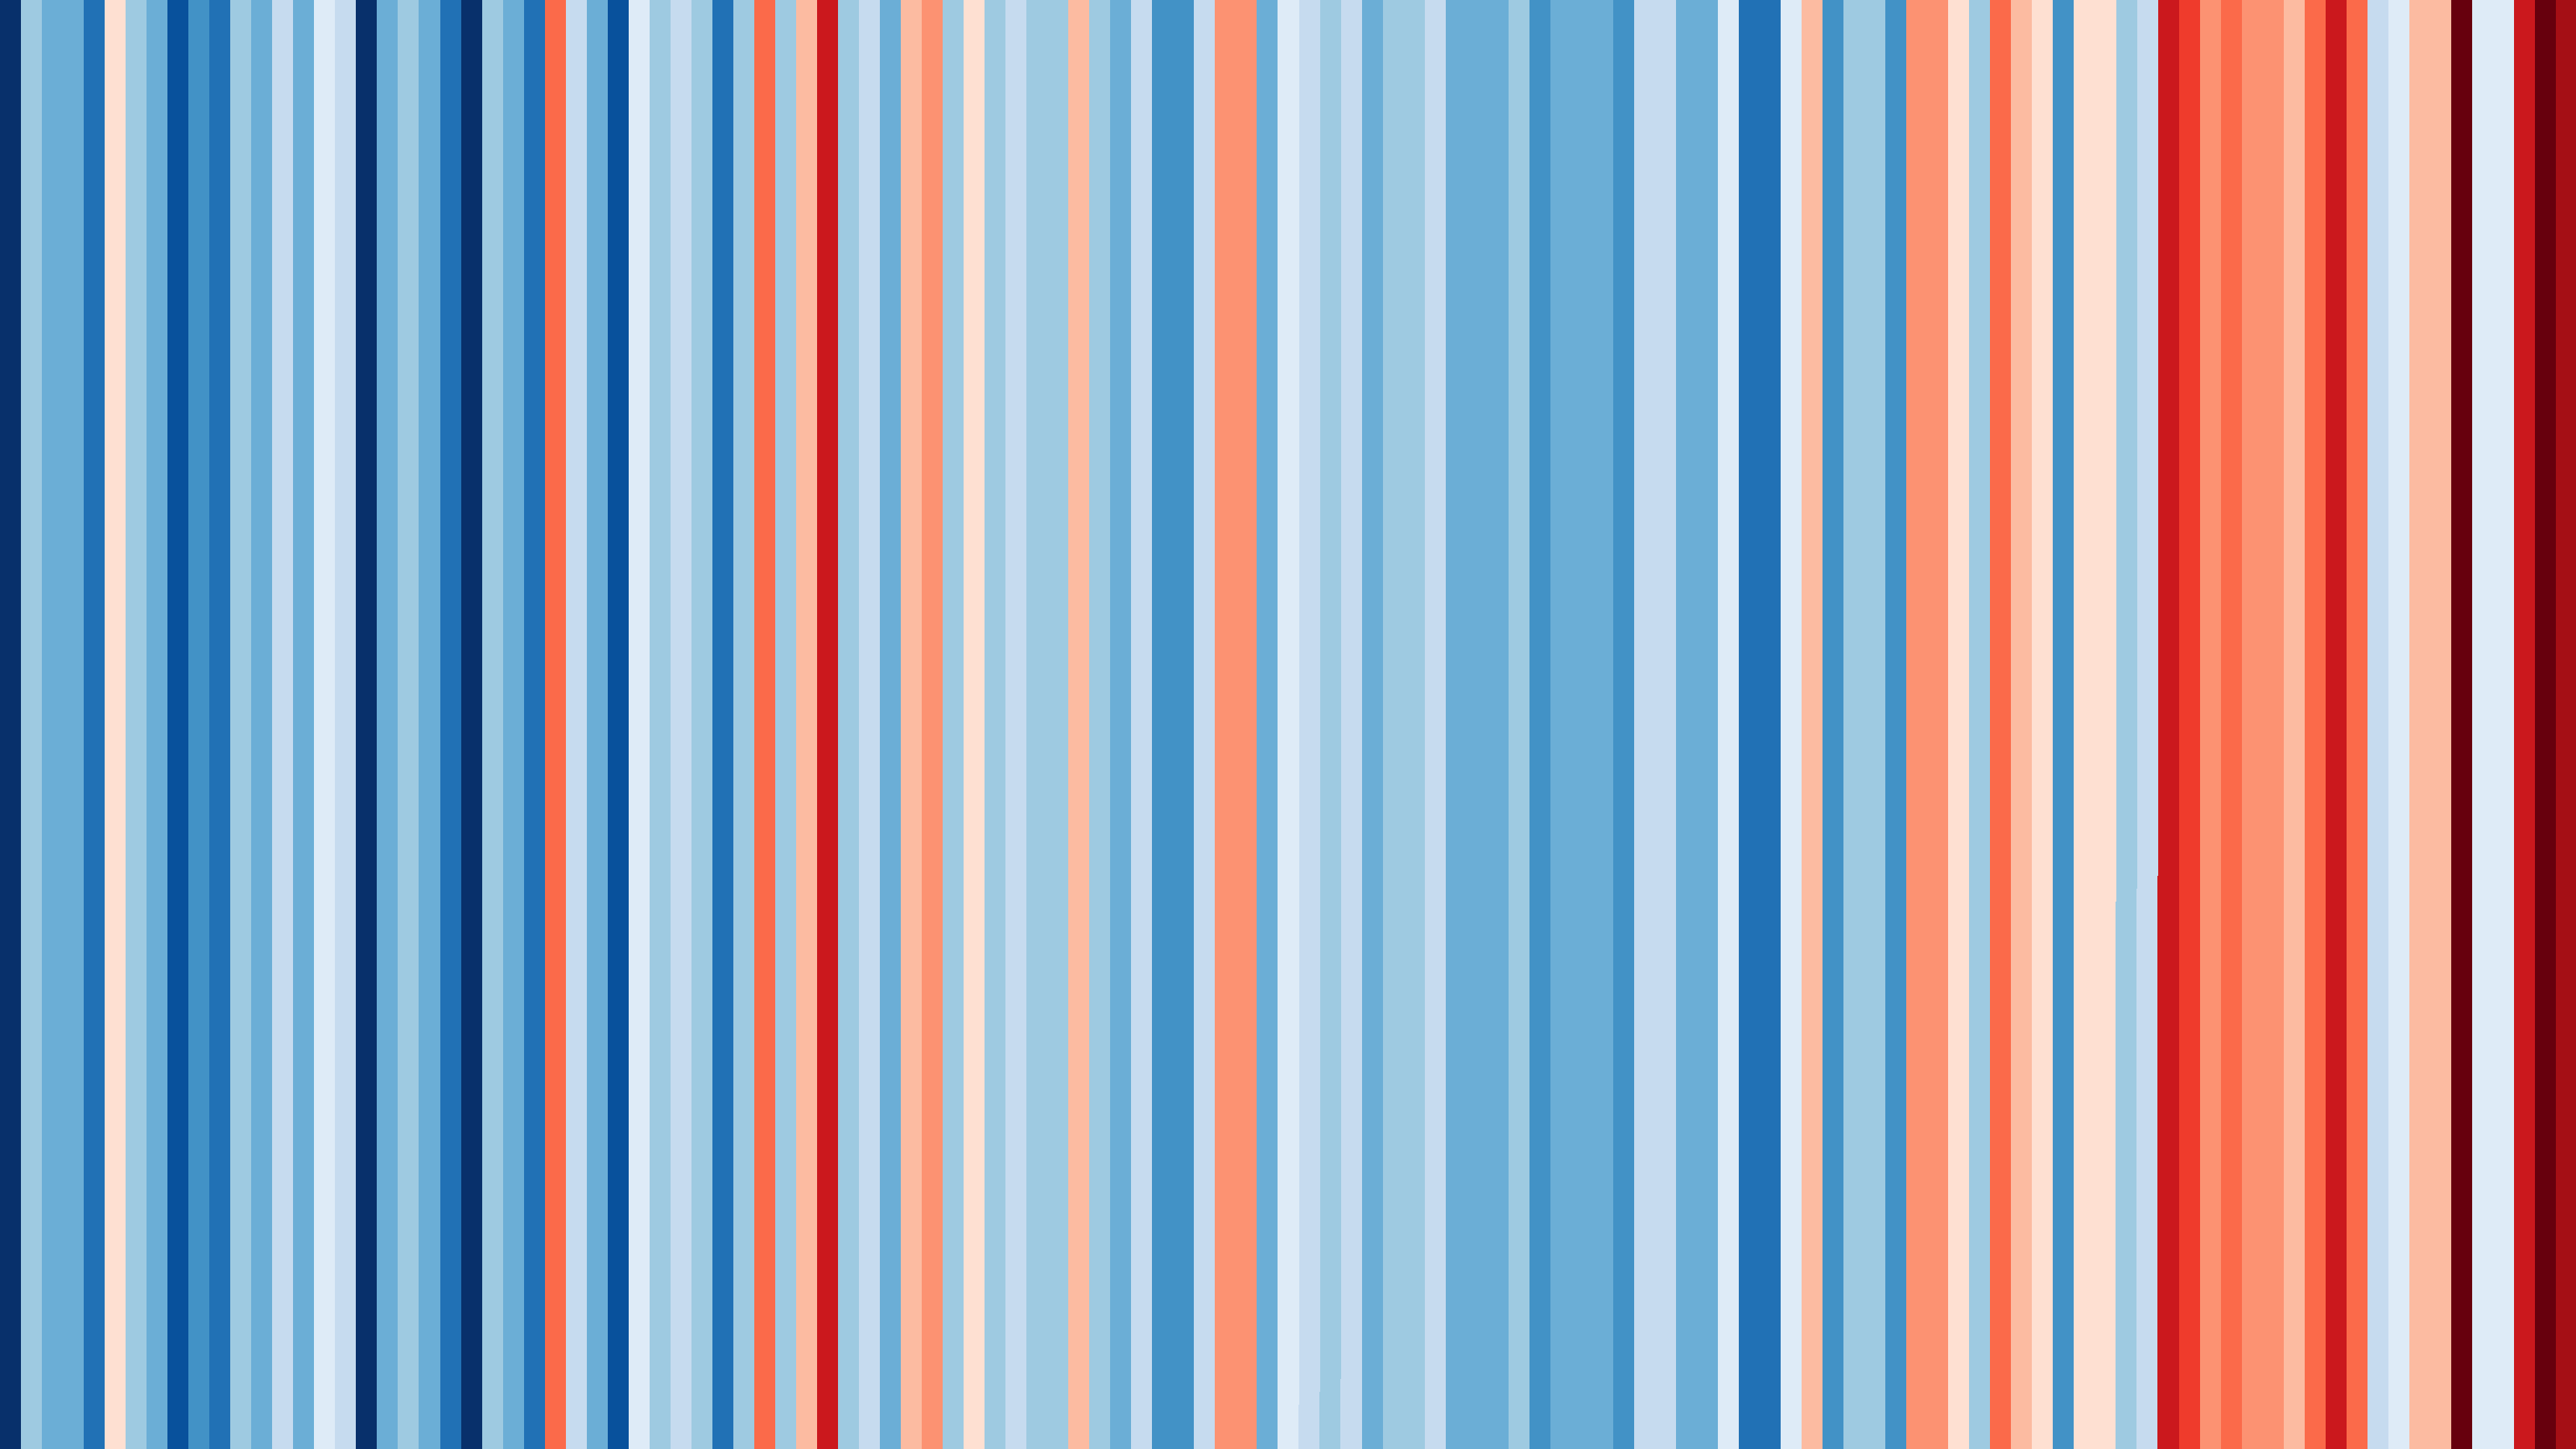 Warming stripes - Annual temperatures for the contiguous USA from 1895-2017